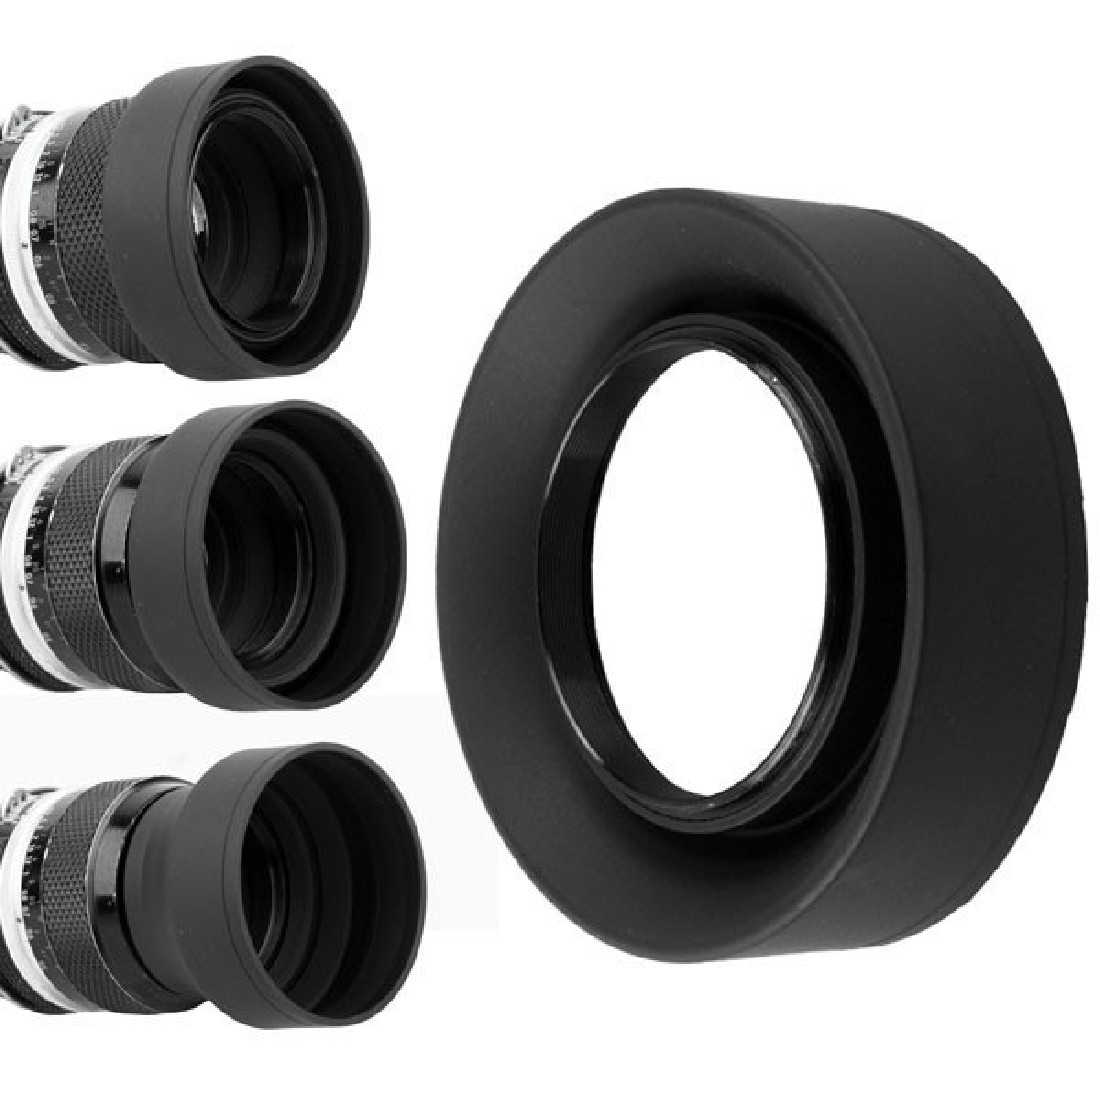 centechia 52/58mm 3-Stage 3 in1 Collapsible Rubber Foldable <font><b>Lens</b></font> <font><b>Hood</b></font> 52/<font><b>58</b></font> mm DSIR <font><b>Lens</b></font> for Nikon Canon camera image